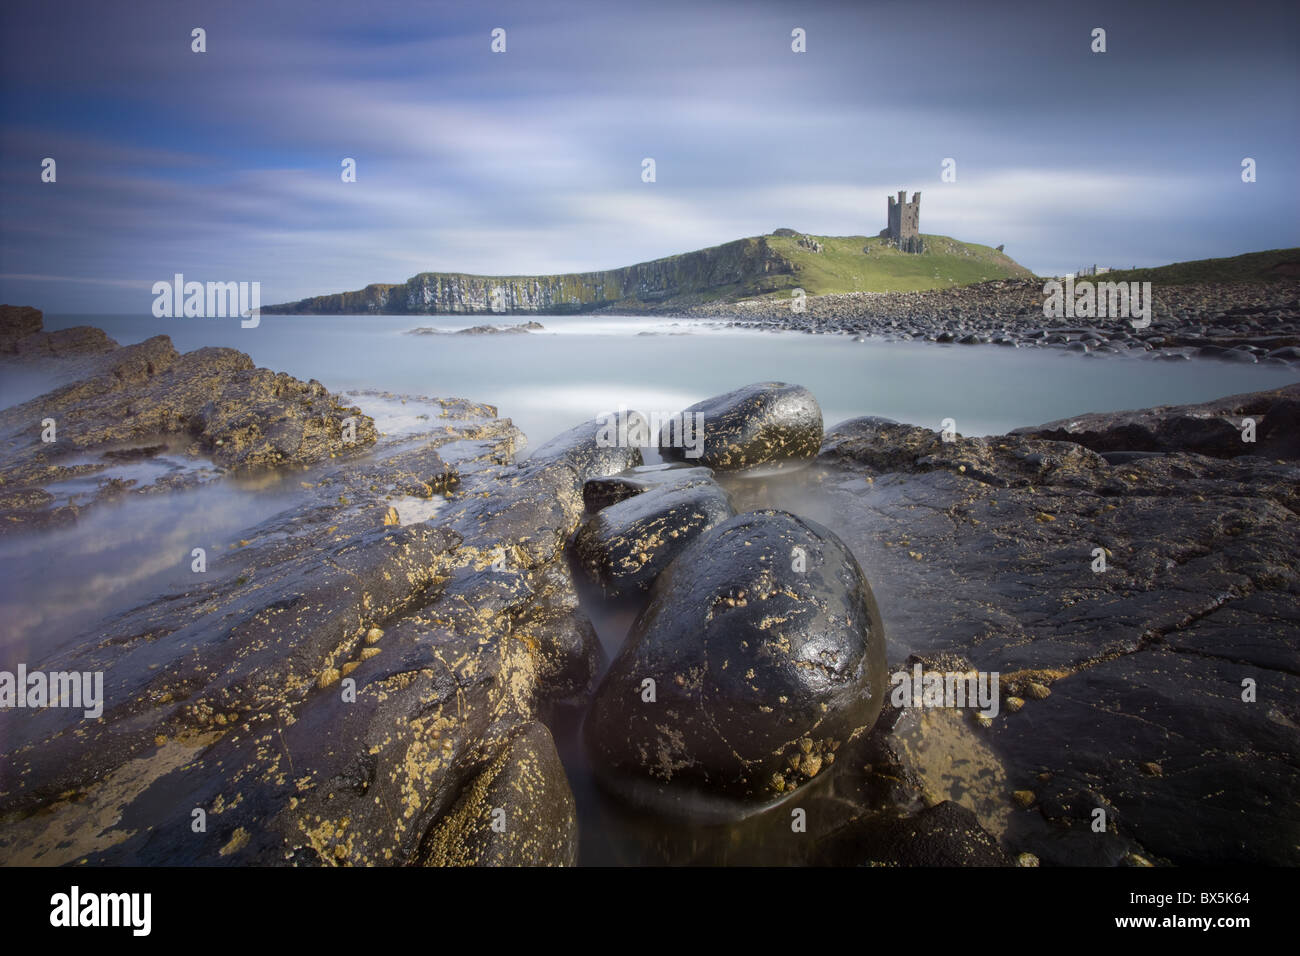 Dunstanburgh Castle bathed in afternoon sunlight with rocky coastline in foreground, Embleton Bay, Northumberland, - Stock Image